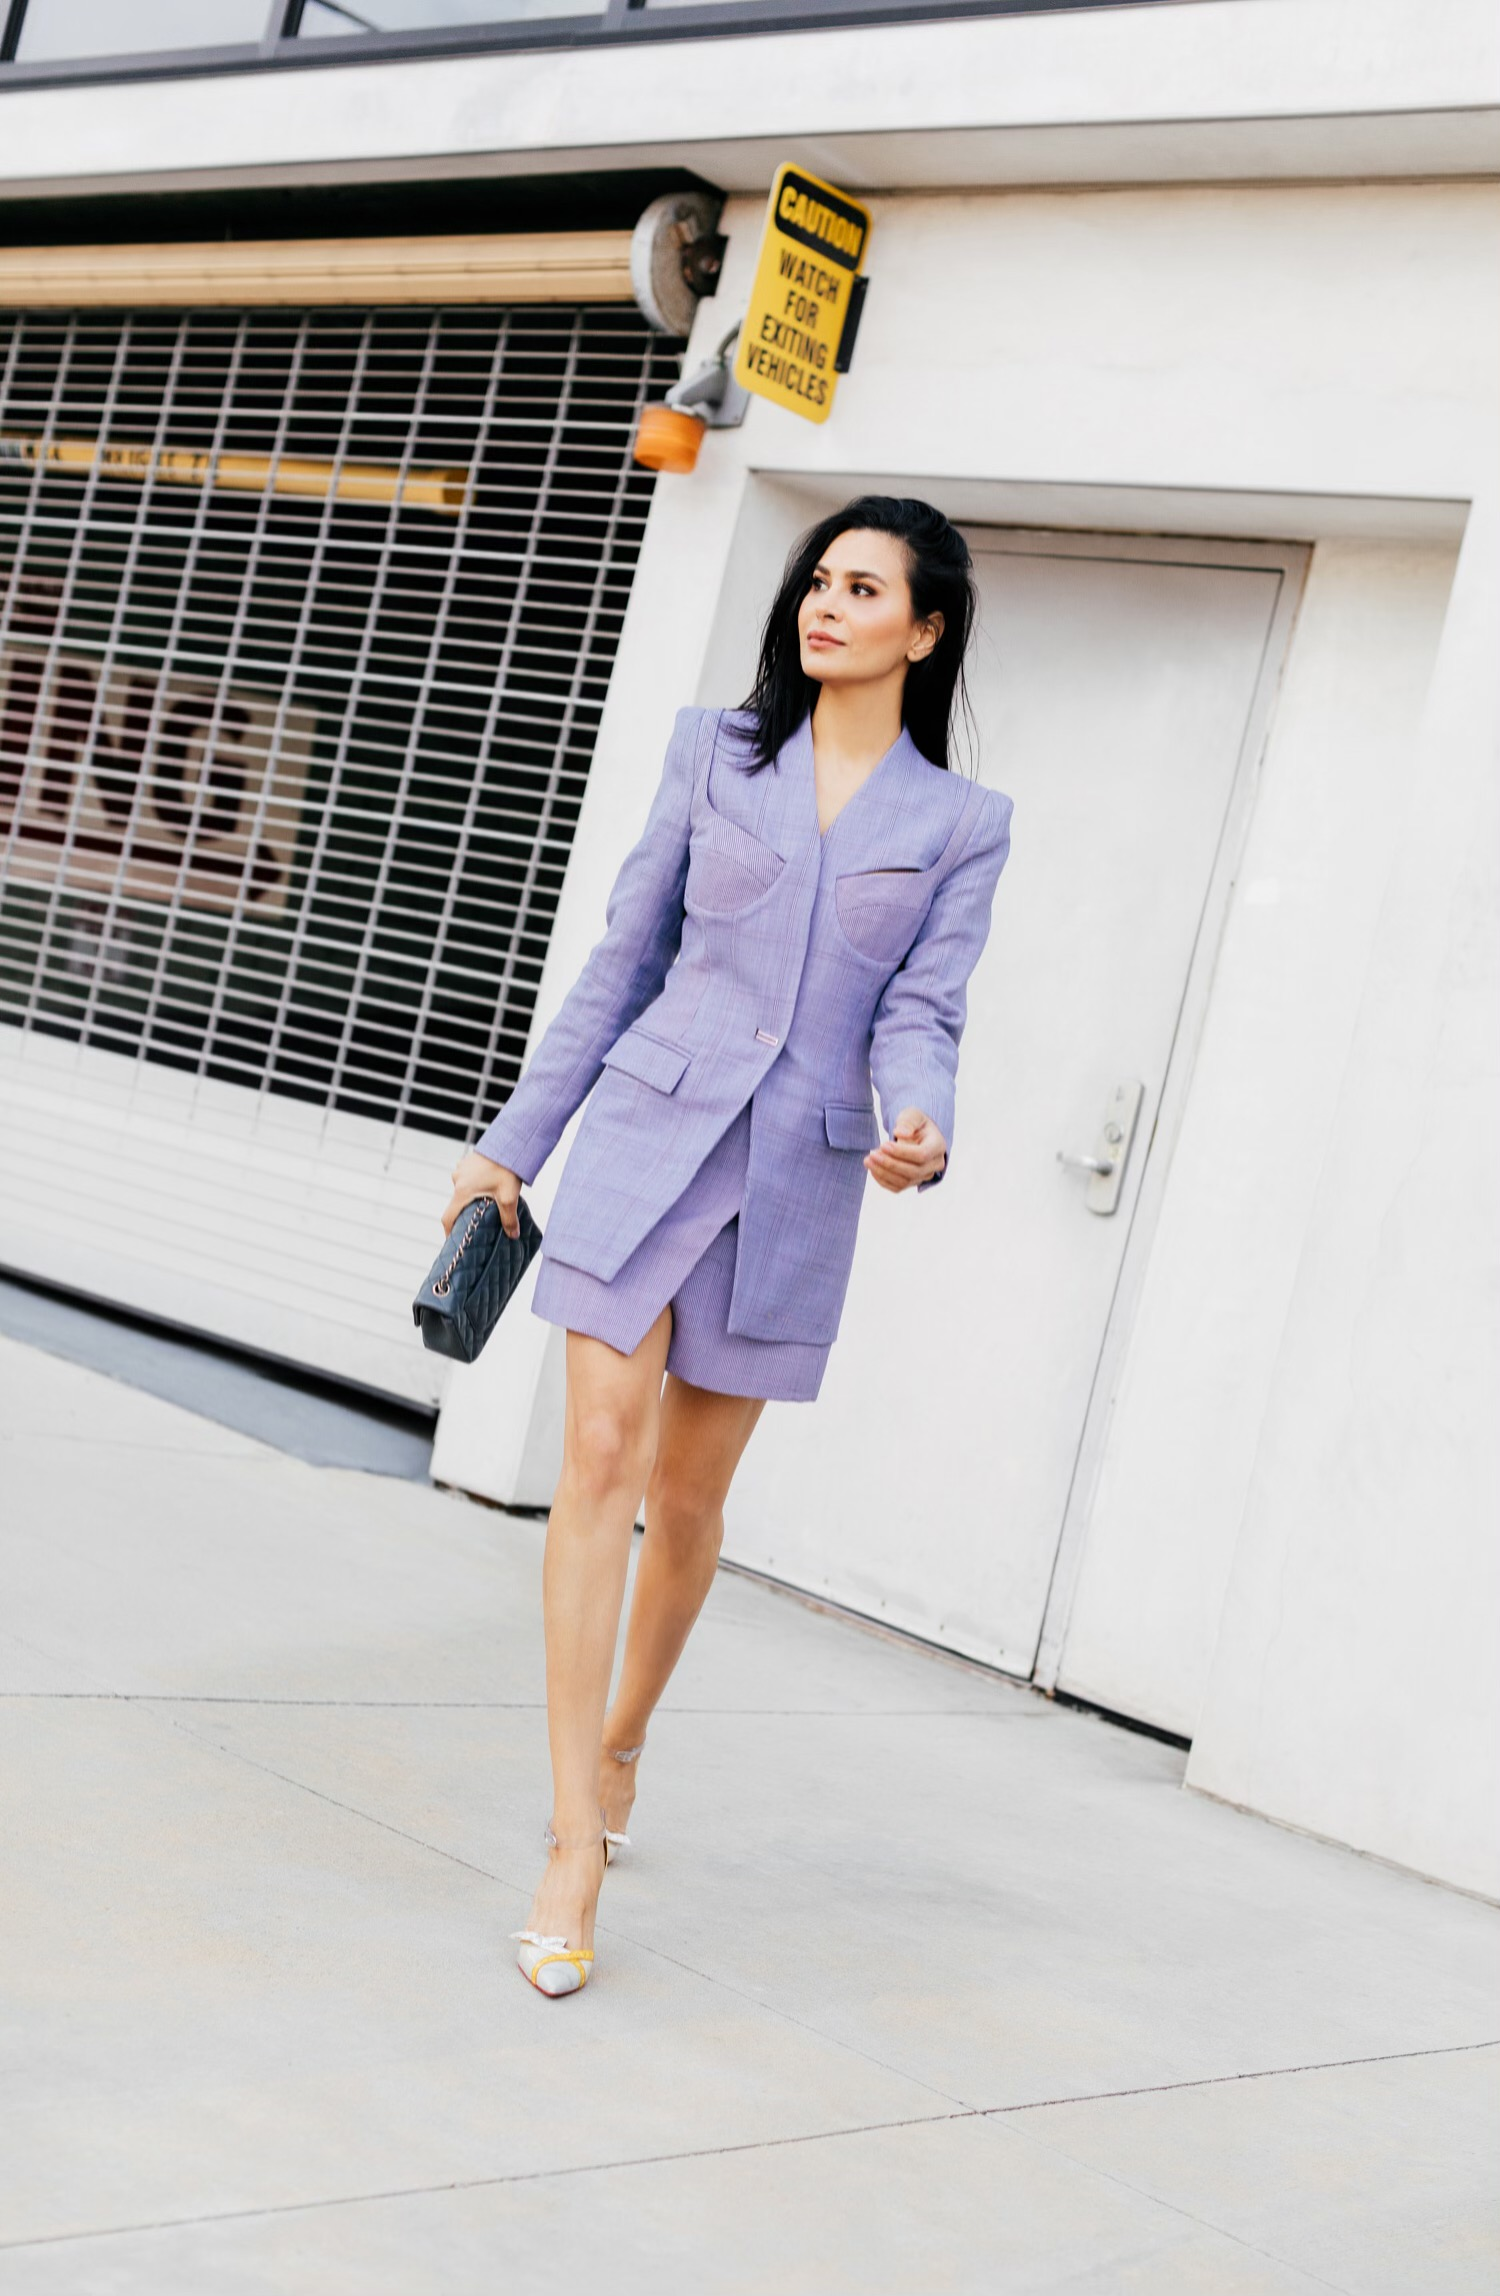 '80s inspired blazer dress